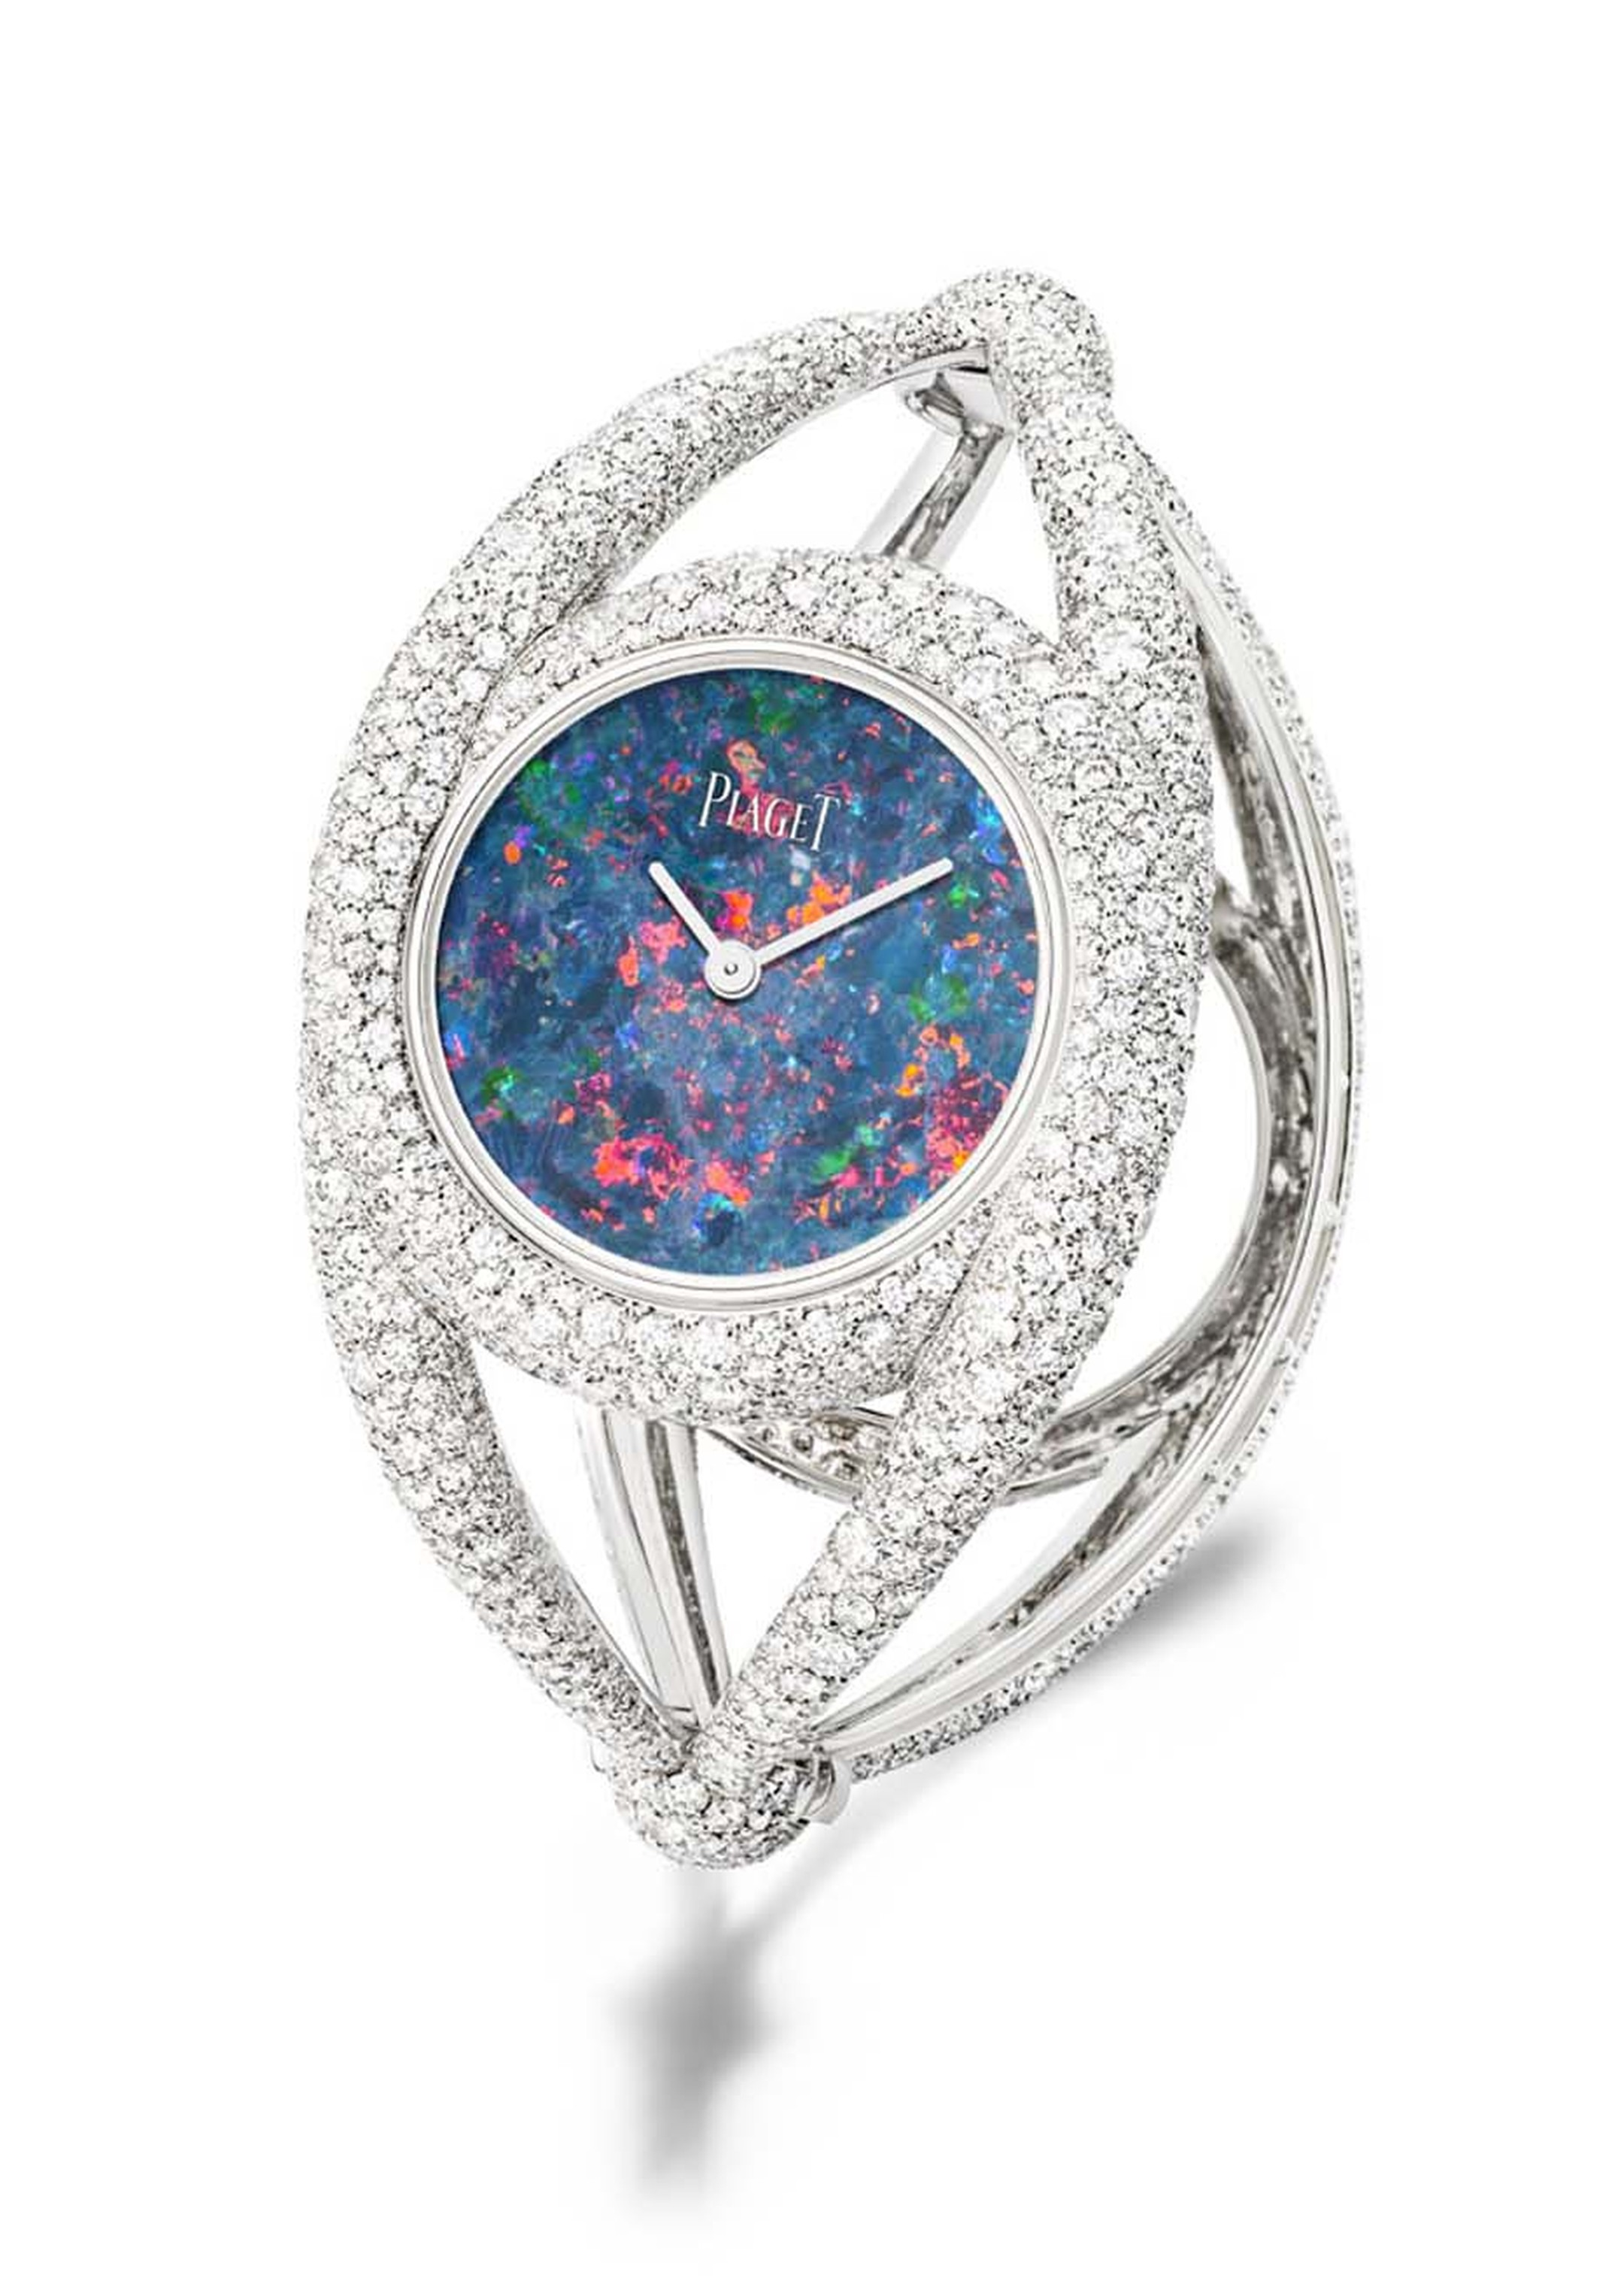 Extremely Piaget collection watch featuring a natural blue opal stone dial surrounded by a snow-set mesh of 1,699 brilliant-cut diamonds totalling 20.50ct.